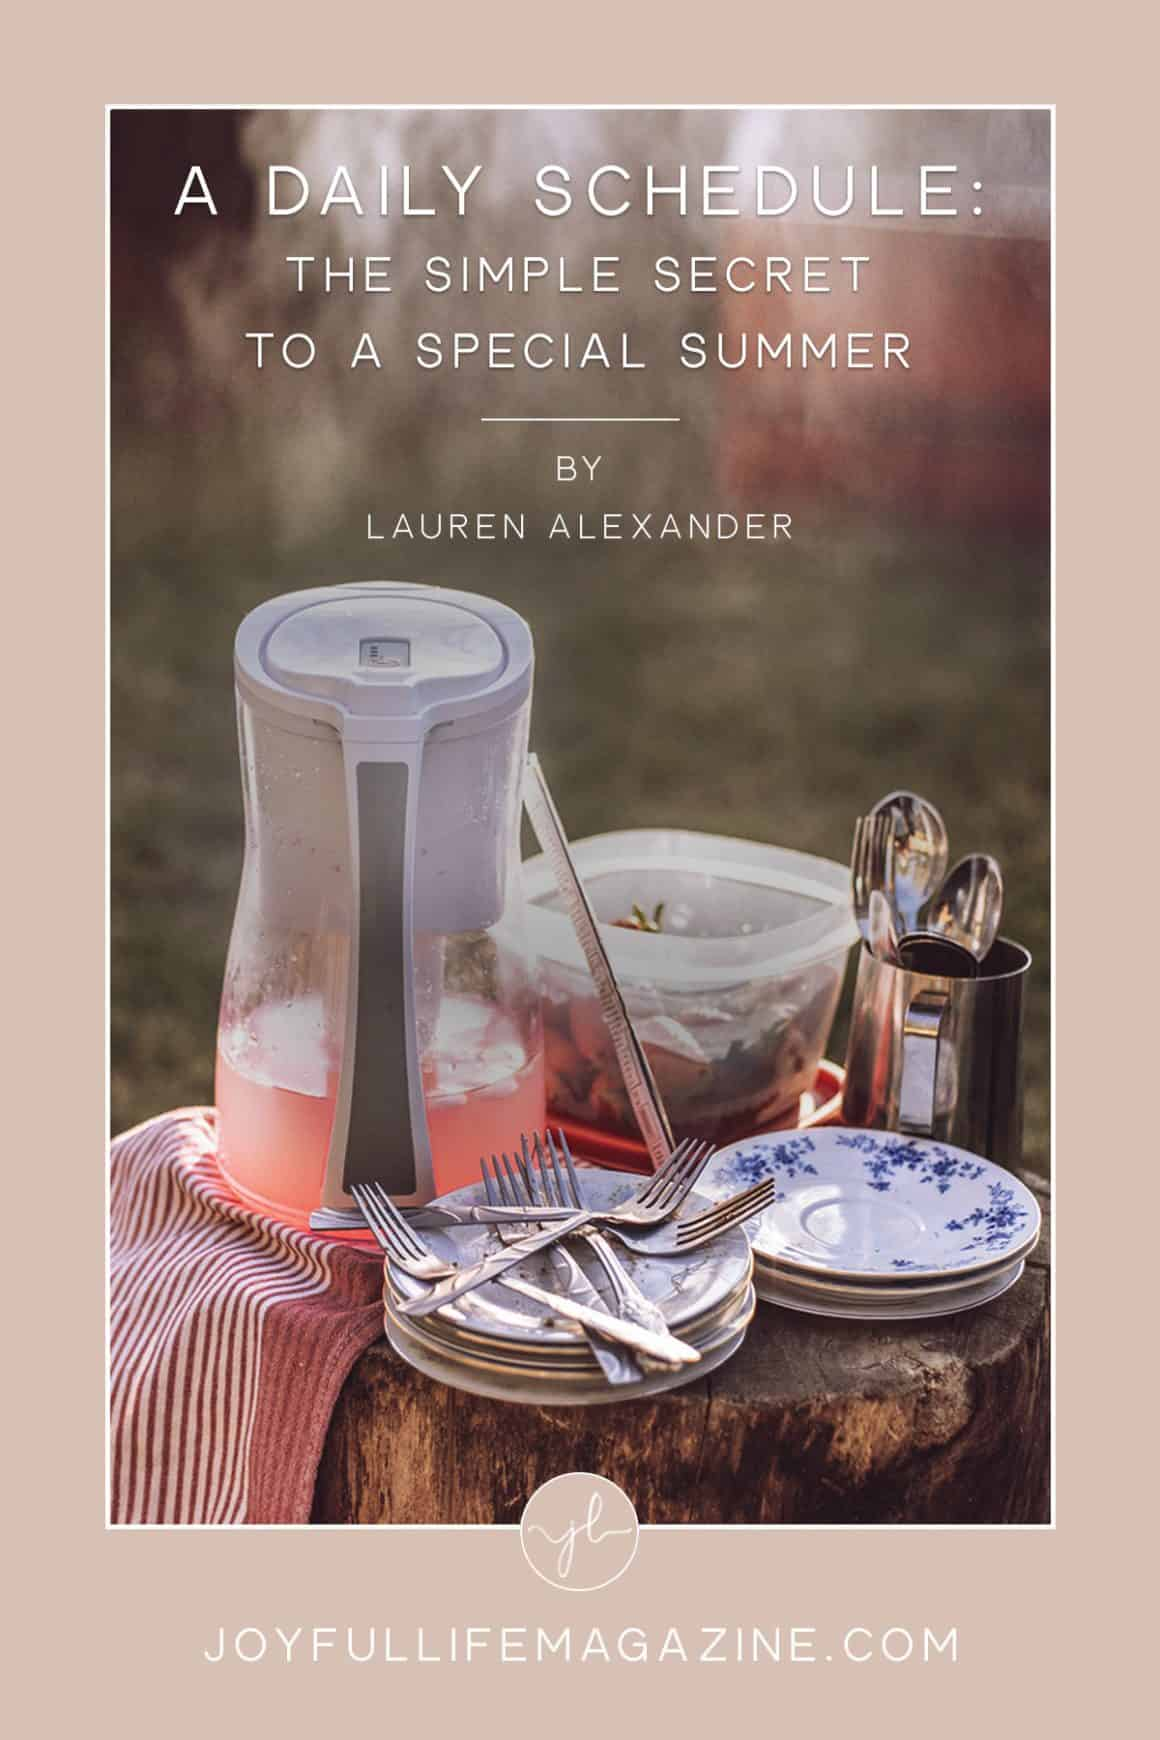 A Daily Schedule: The Simple Secret to a Special Summer | by Lauren Alexander | The Joyful Life Magazine